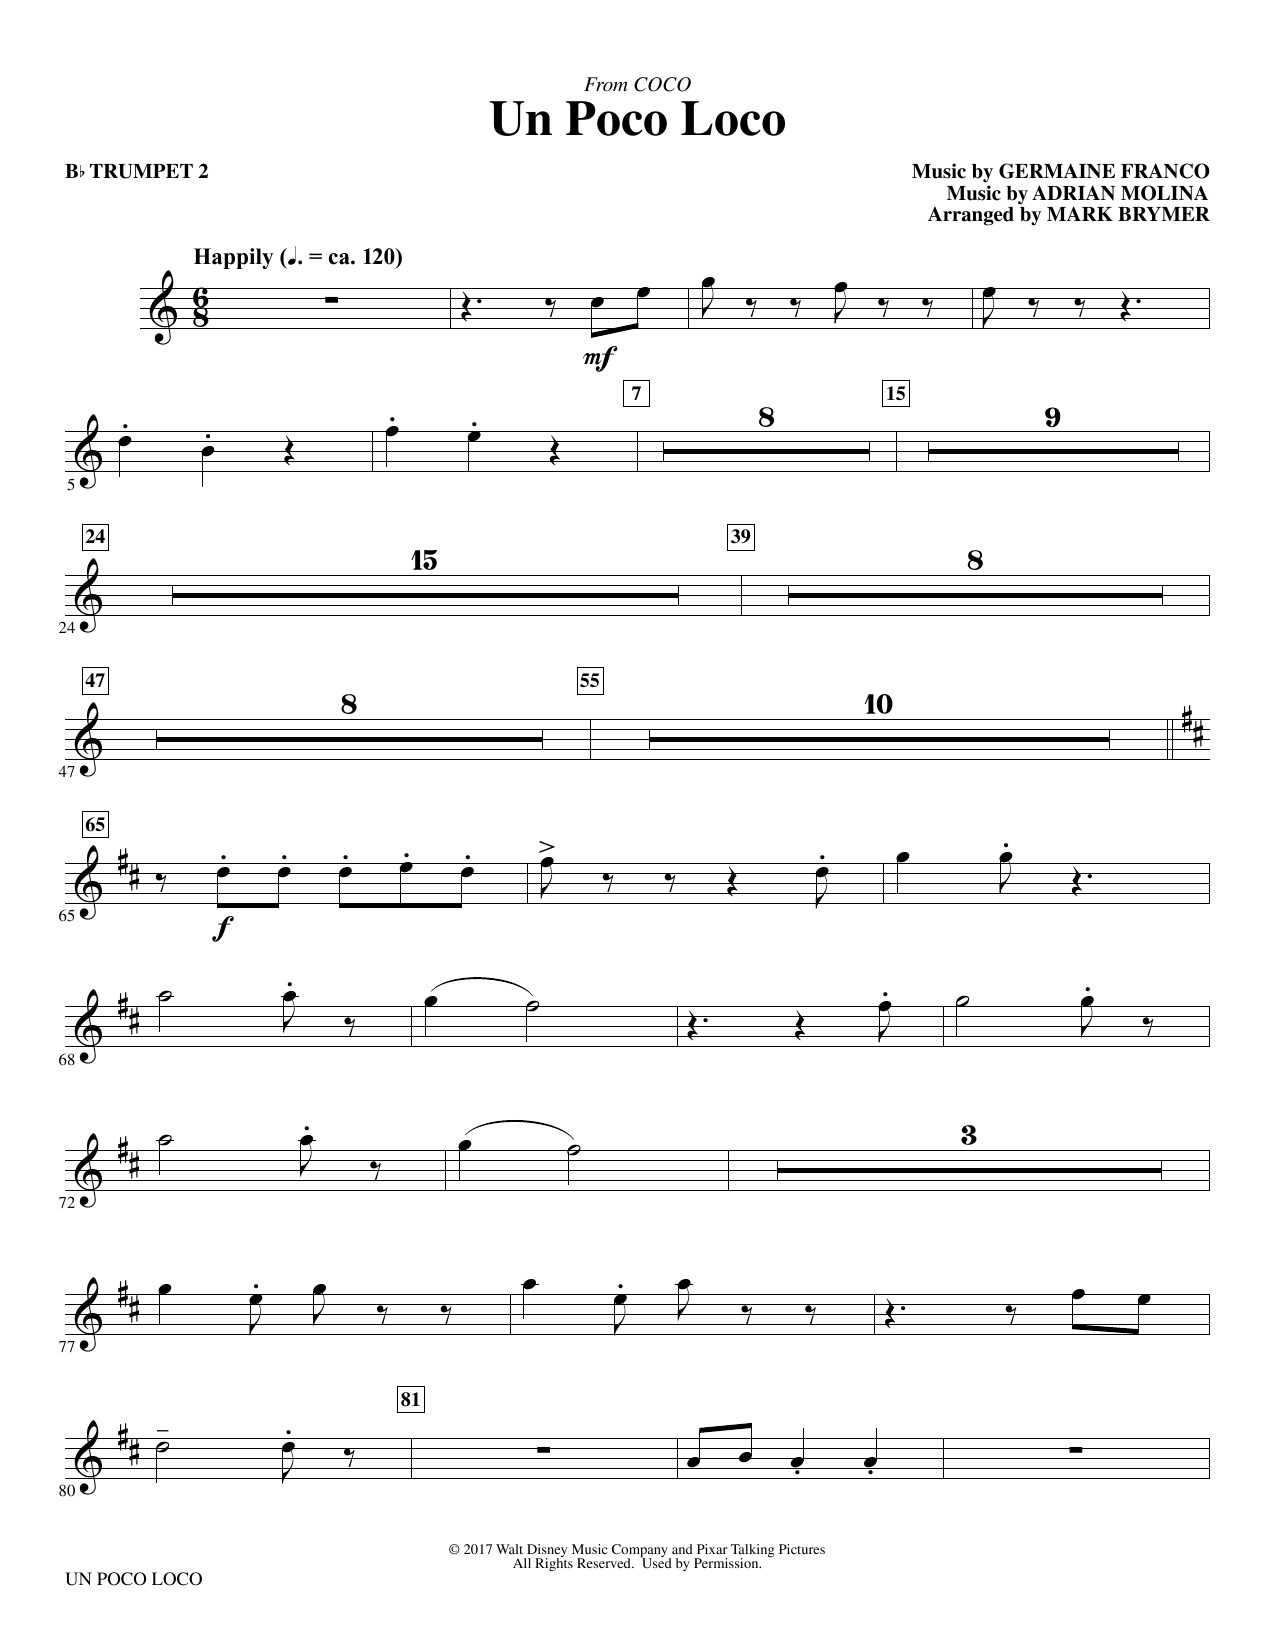 Germaine Franco & Adrian Molina Un Poco Loco (from Coco) (arr. Mark Brymer) - Trumpet 2 sheet music notes and chords. Download Printable PDF.